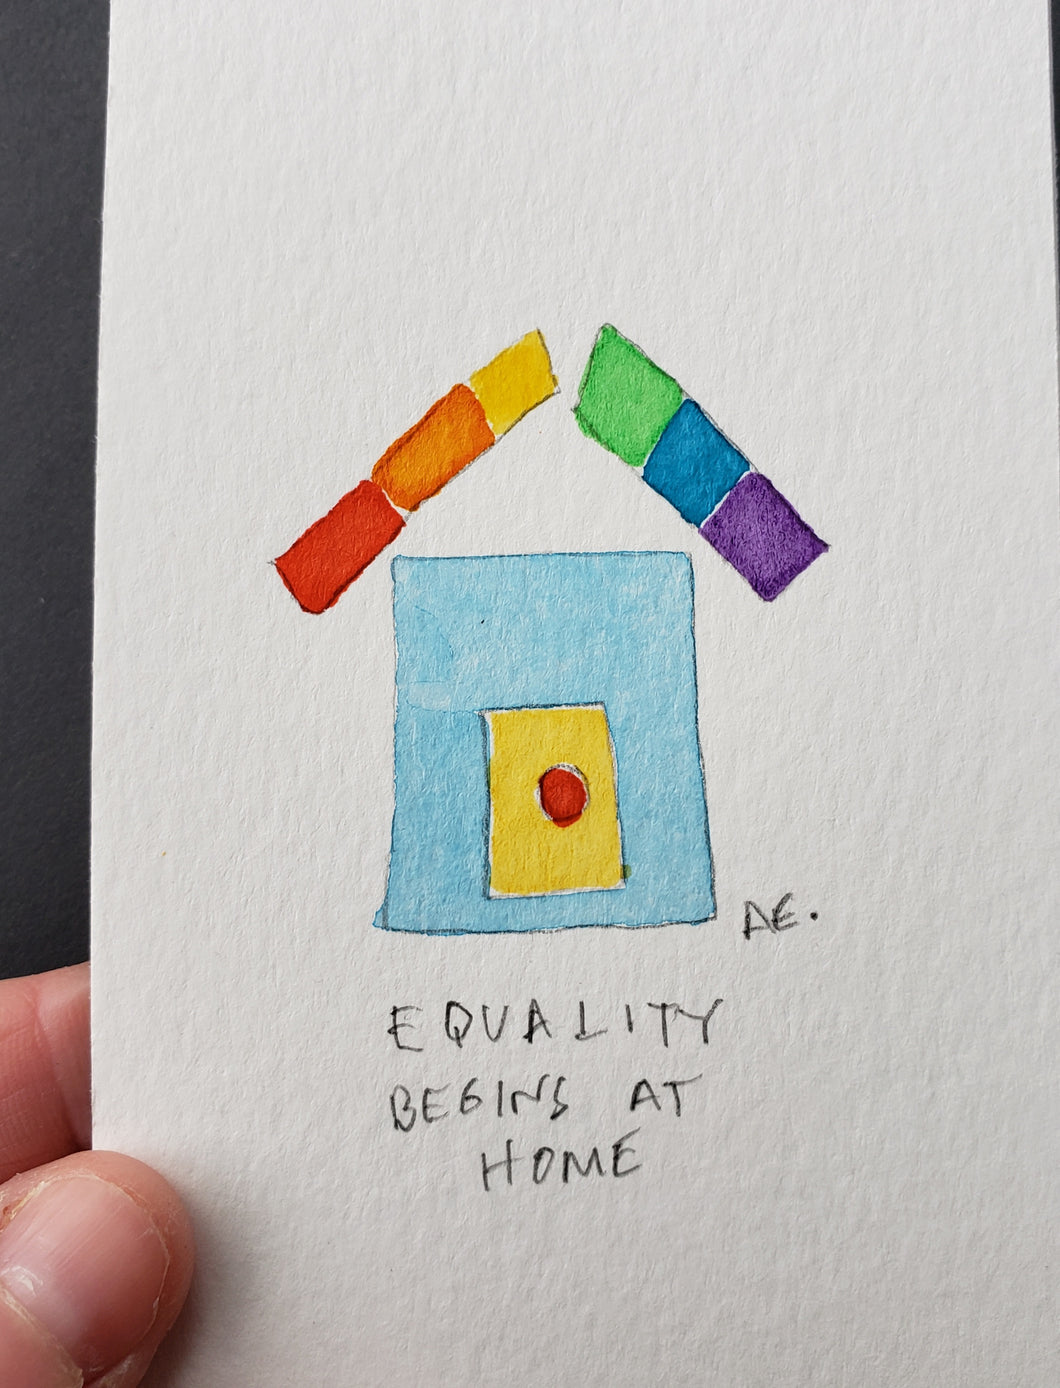 Equality Begins at Home